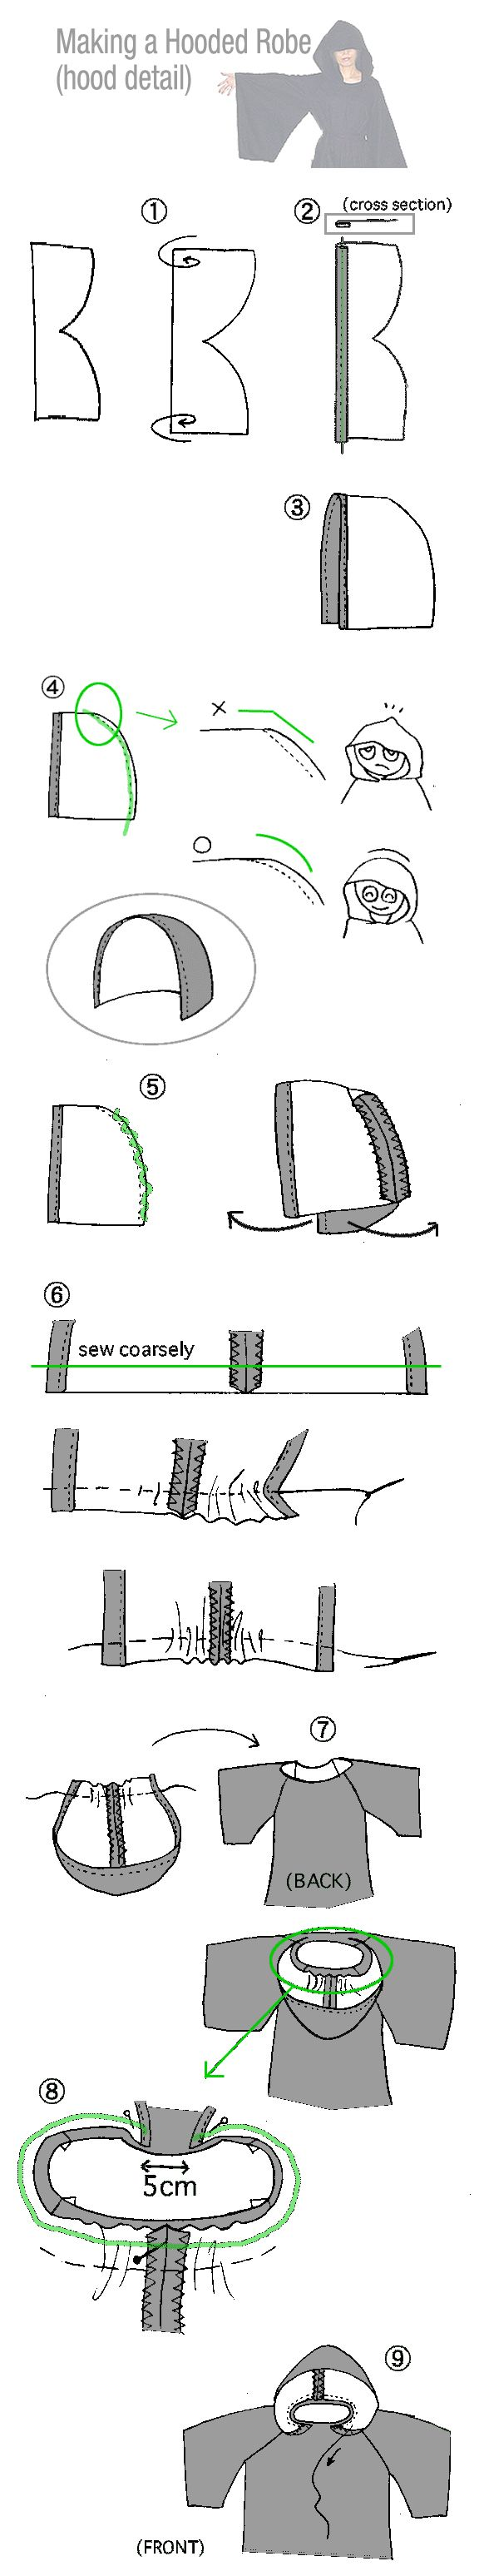 How to Make a Hooded Robe (Hood Detail) - Warning, original page not in English and Chrome doesn't even try translating so good luck with that part  ;)